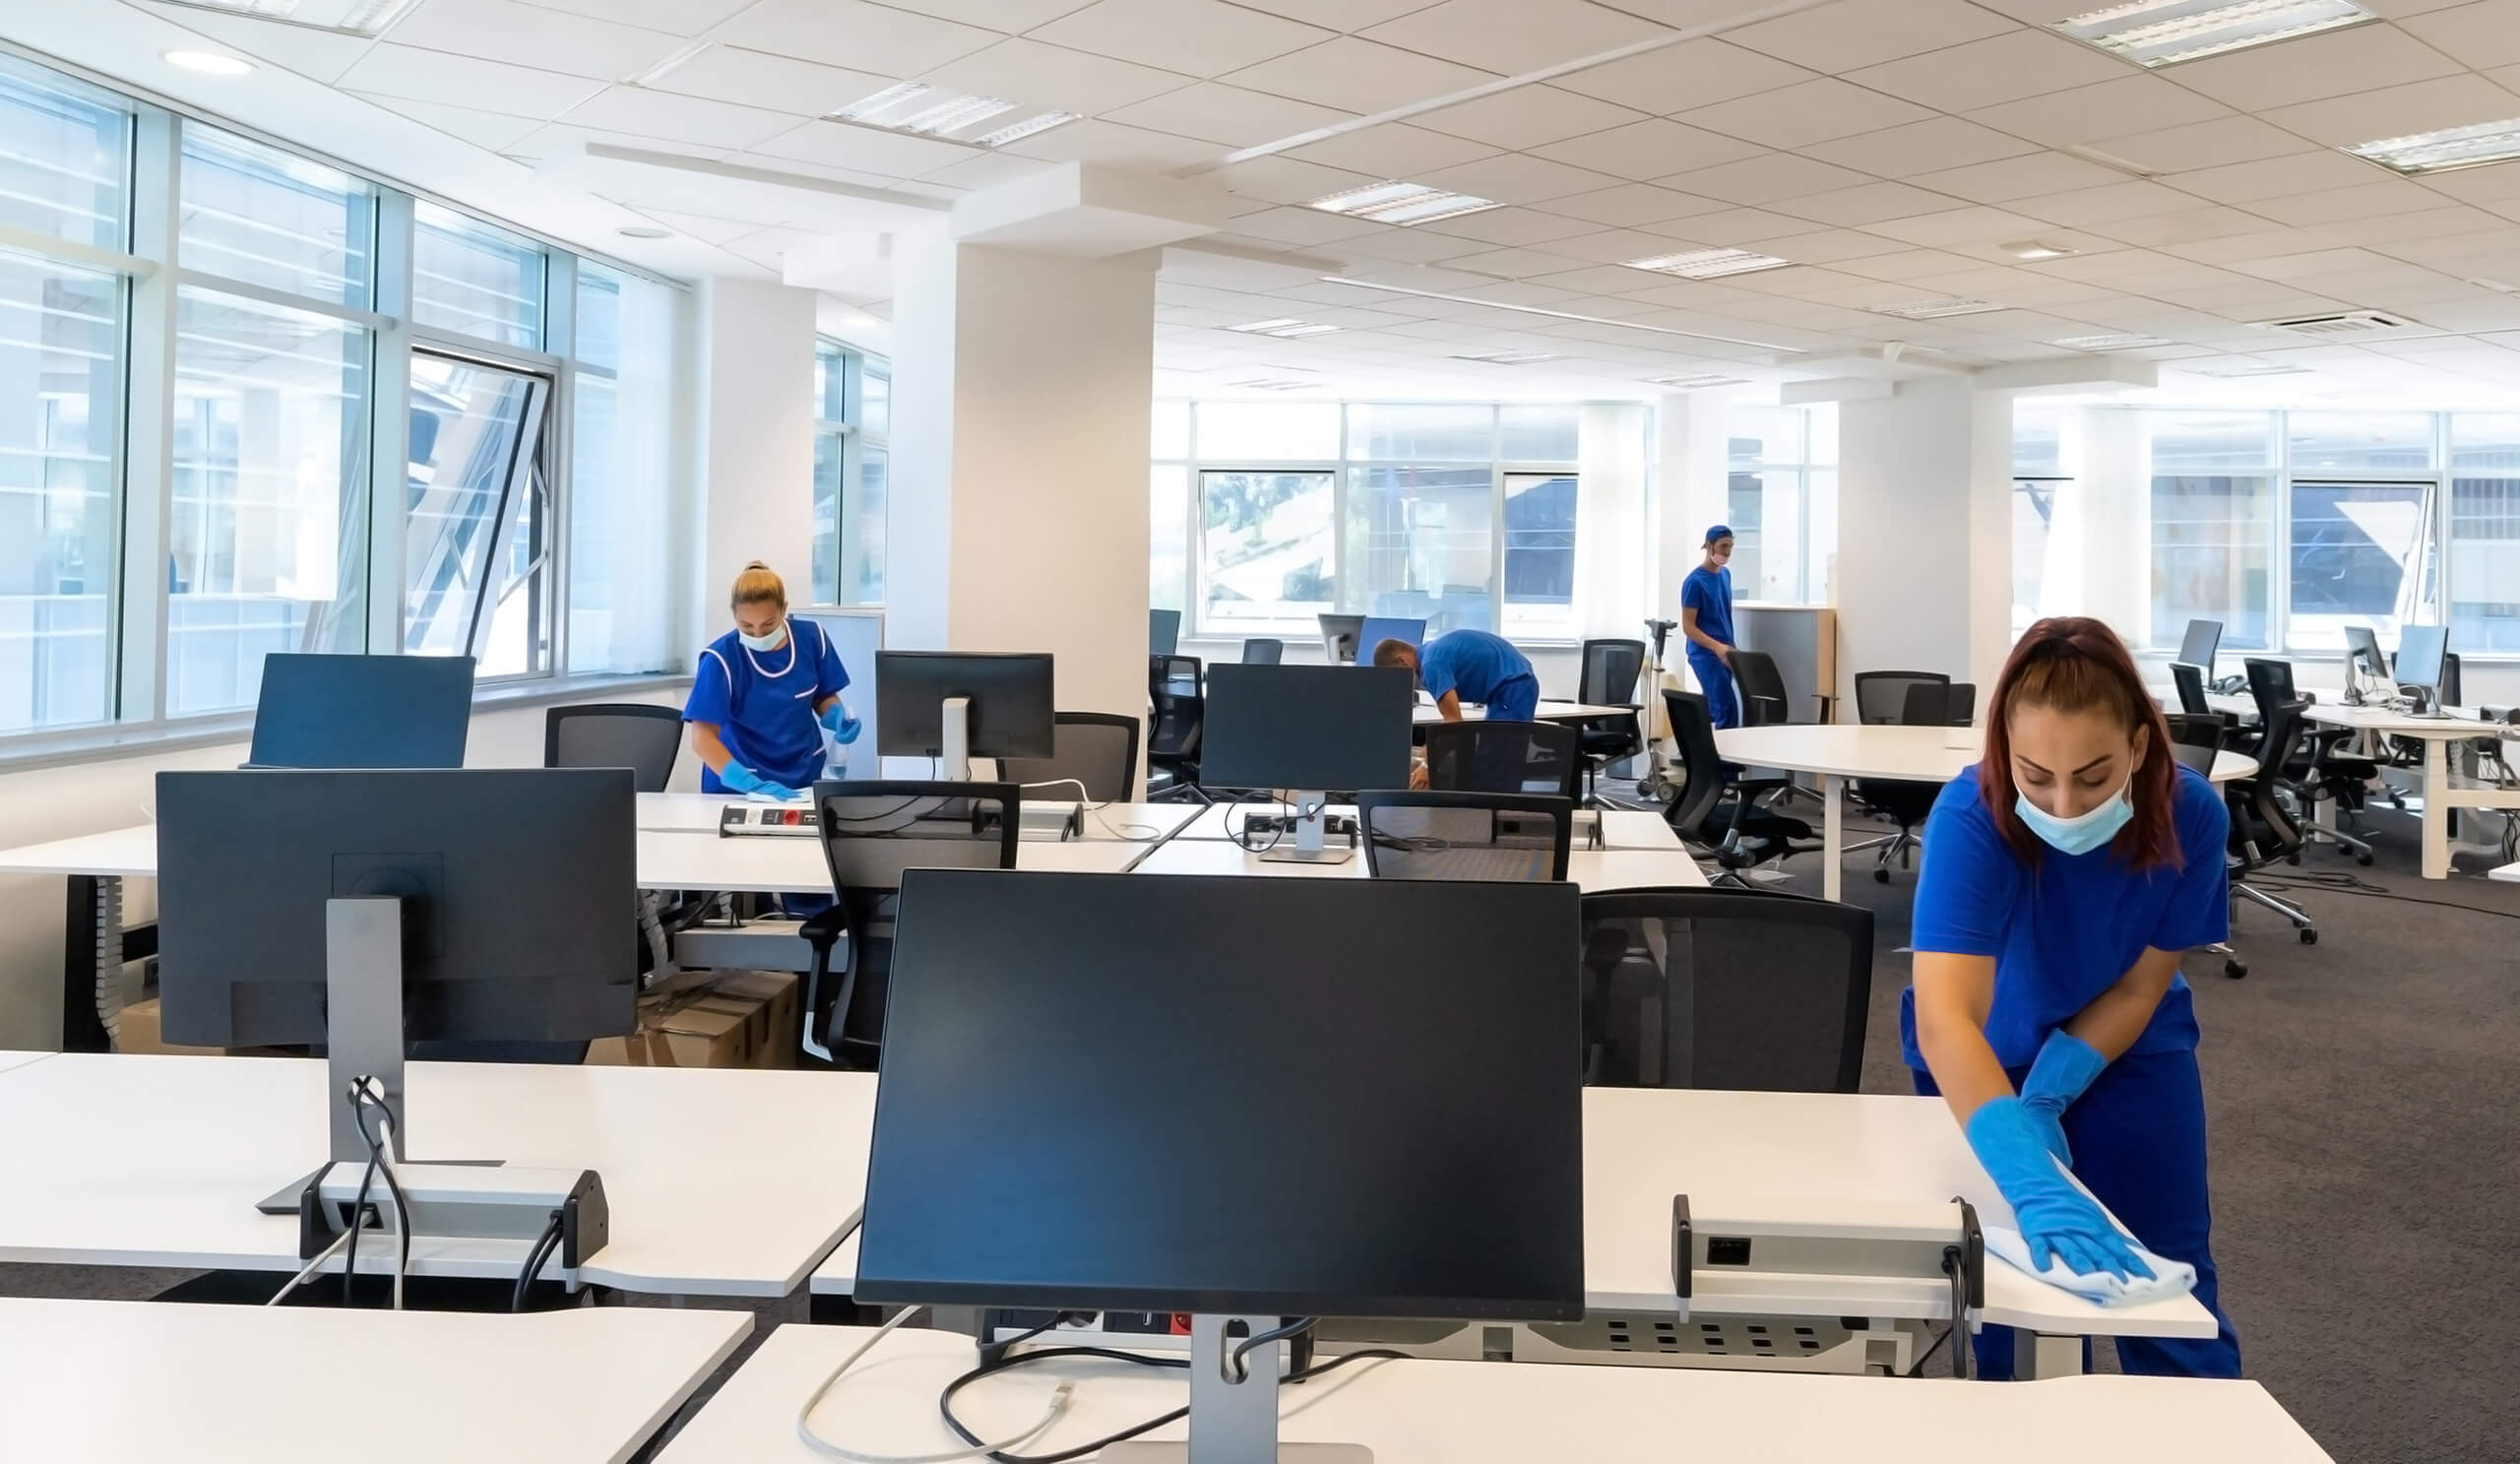 Clean and safe facilities maximize comfort, productivity and morale.